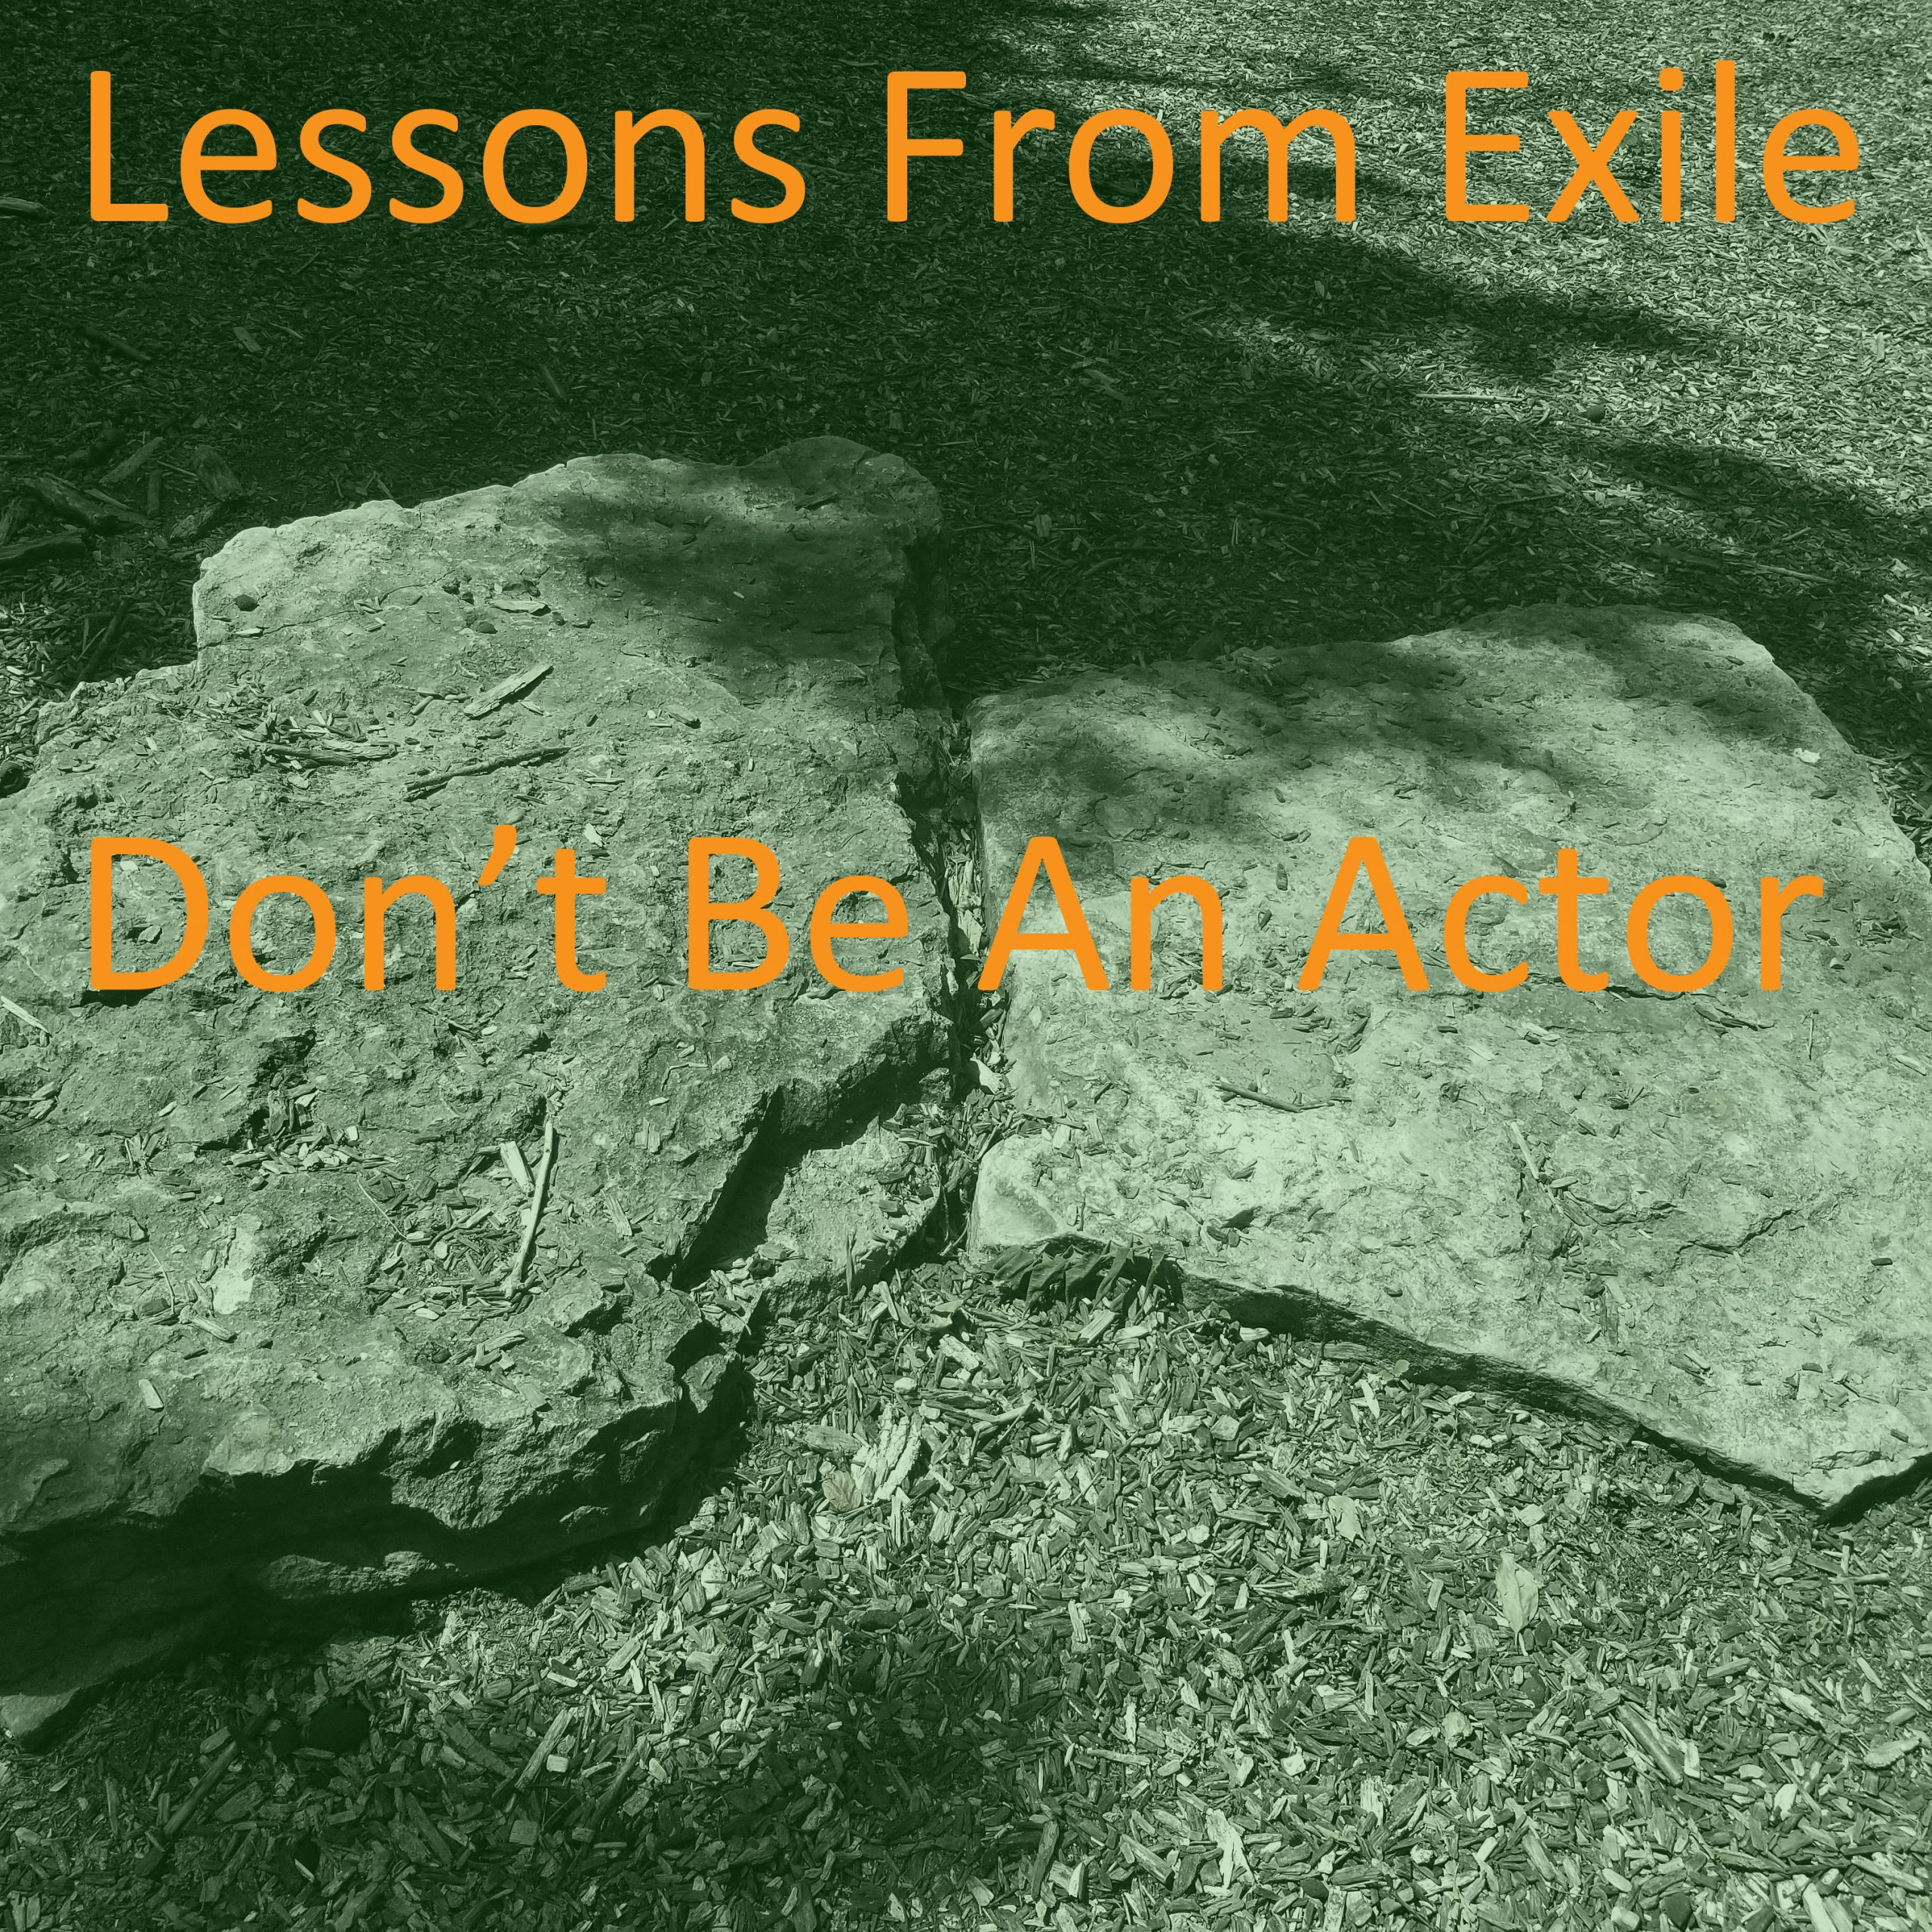 Lessons from Exile #64: Don't Be An Actor